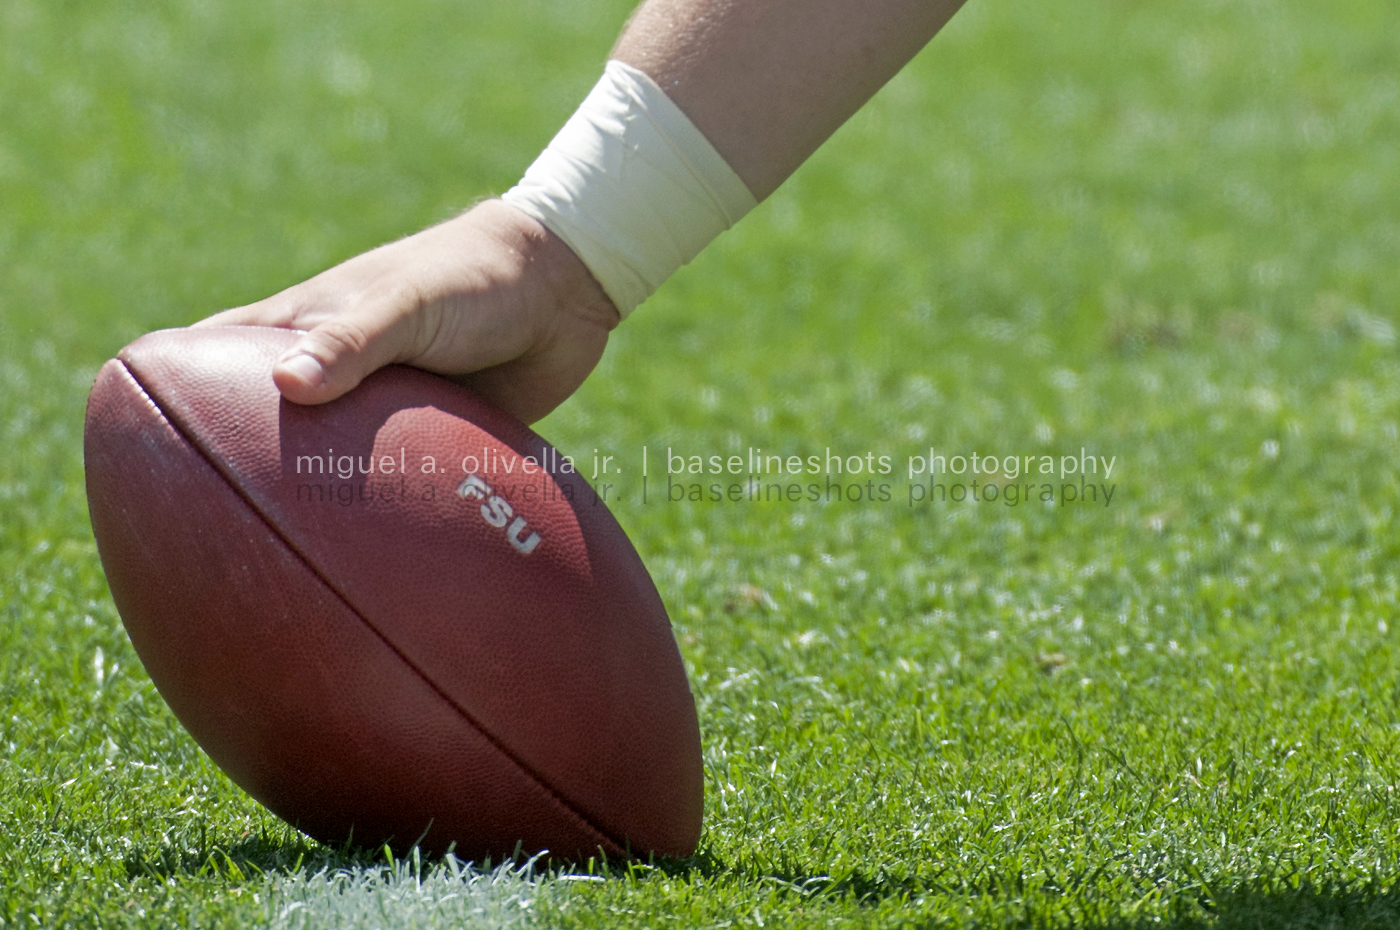 Mike Olivellas Photography Blog How Quickly The Rust Accumulates Basketball Football Golf Soccer Tennis Thats Just Over Three Months Ago And Since Then Ive Shot Tons Of Baseball Track